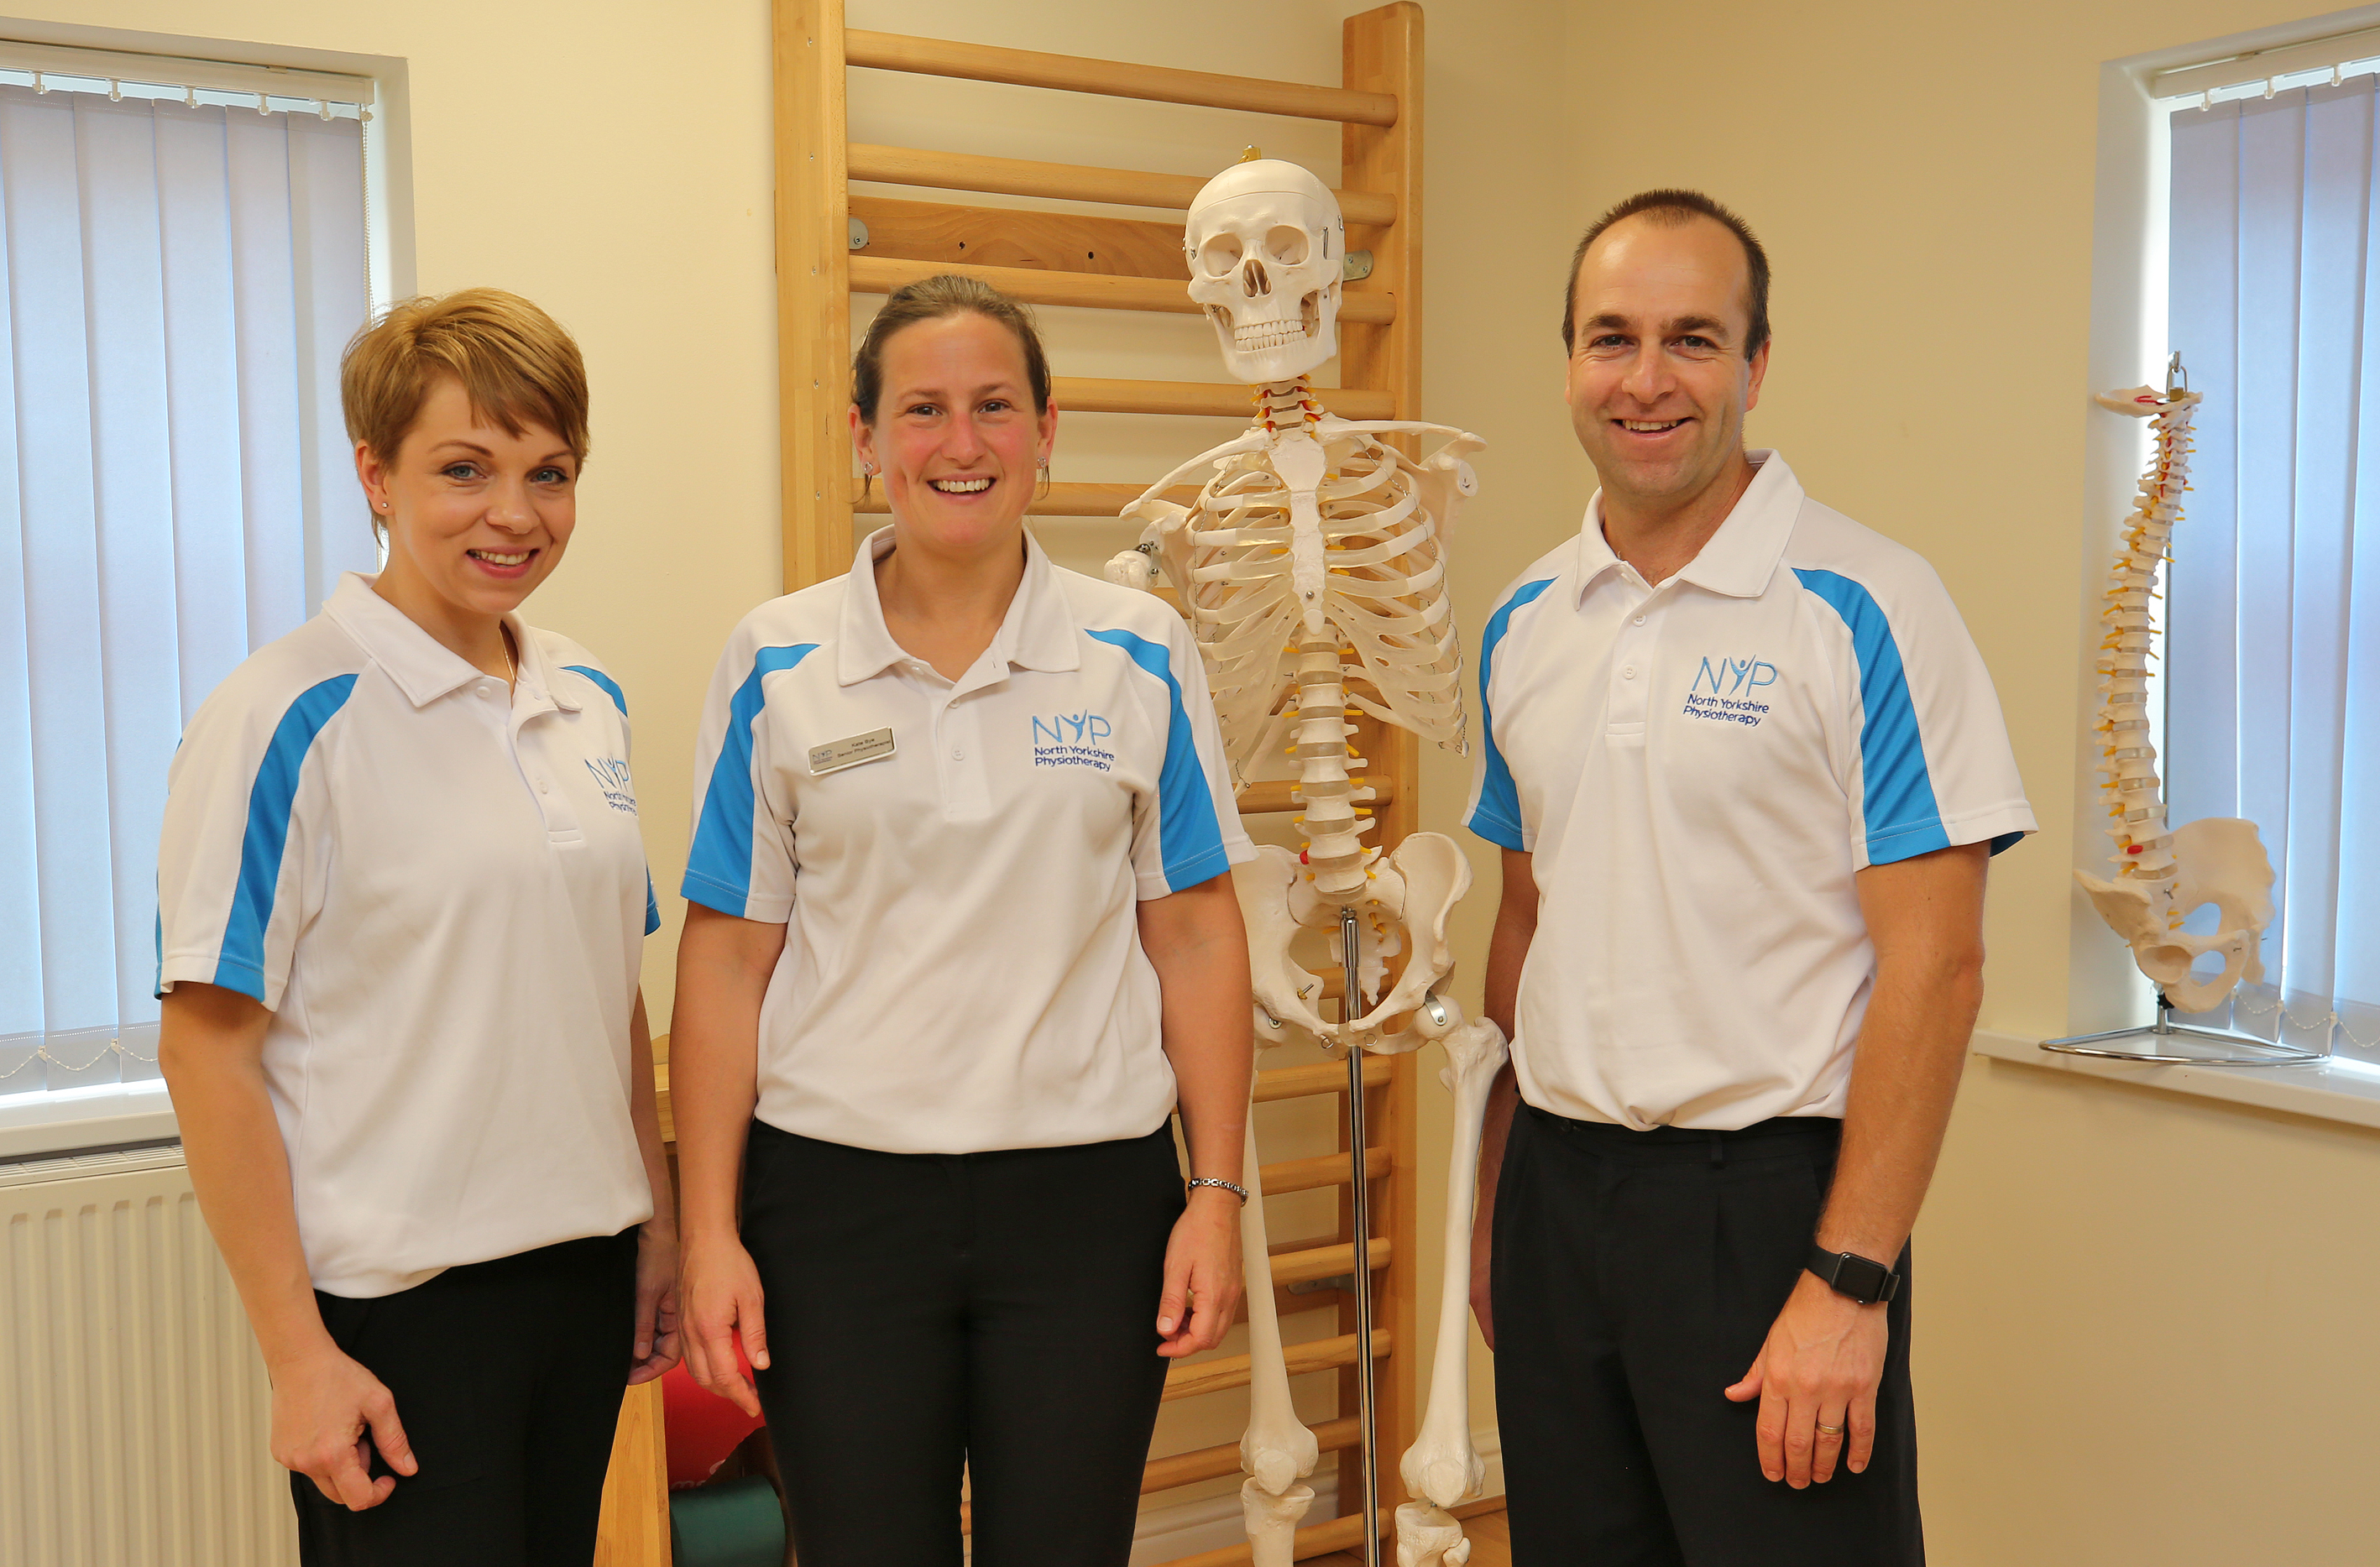 Meet the team, Stokesley Leisure Center, Skeleton, north yorkshire